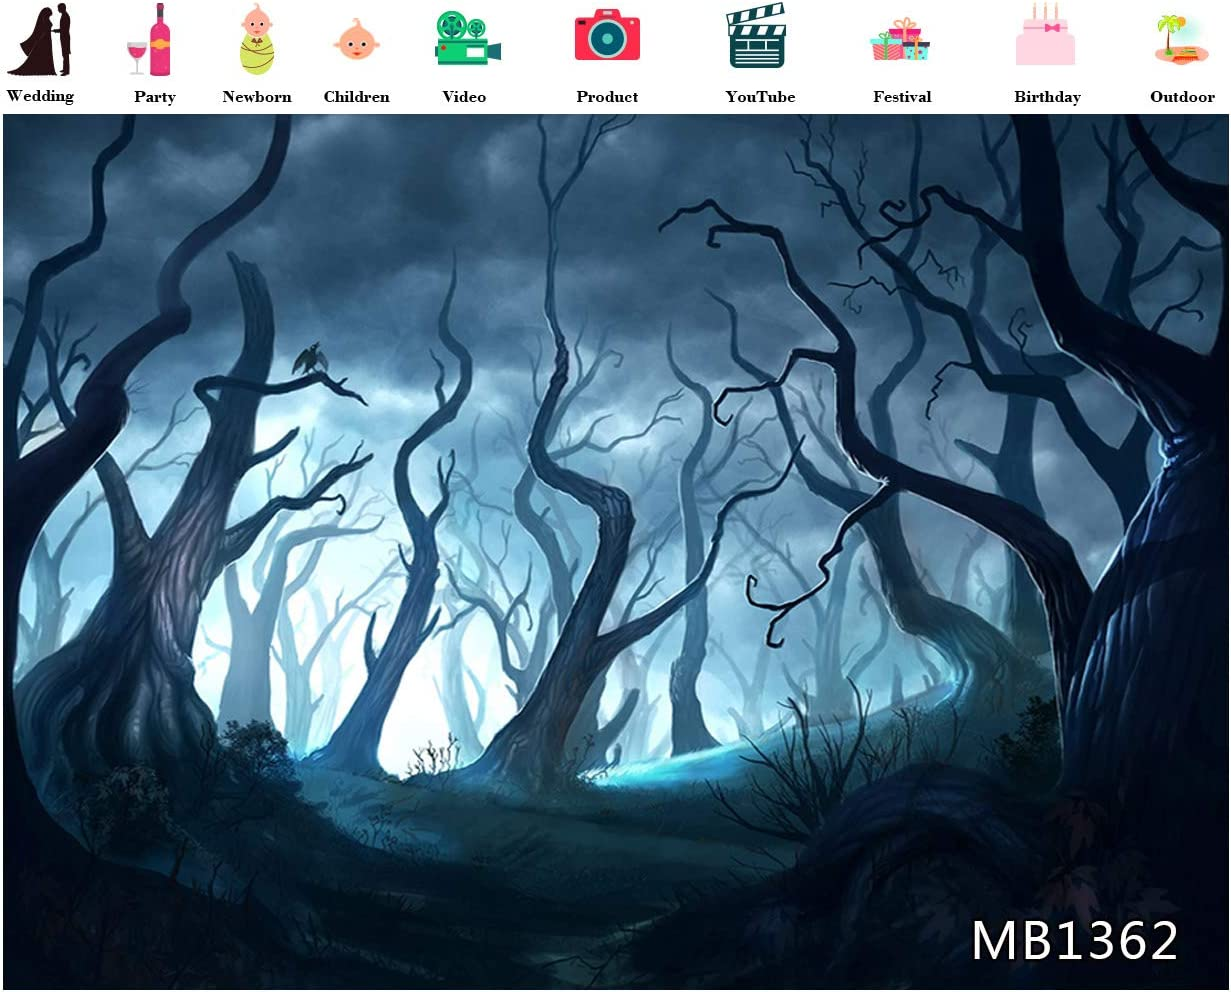 LB 10x8ft Halloween Themed Backdrop for Photography Dark Forest Background for Photoshoot Withered Trees Decorations for Halloween Blue Gloomy Scenery Background Decorations for Banner Photo Booth